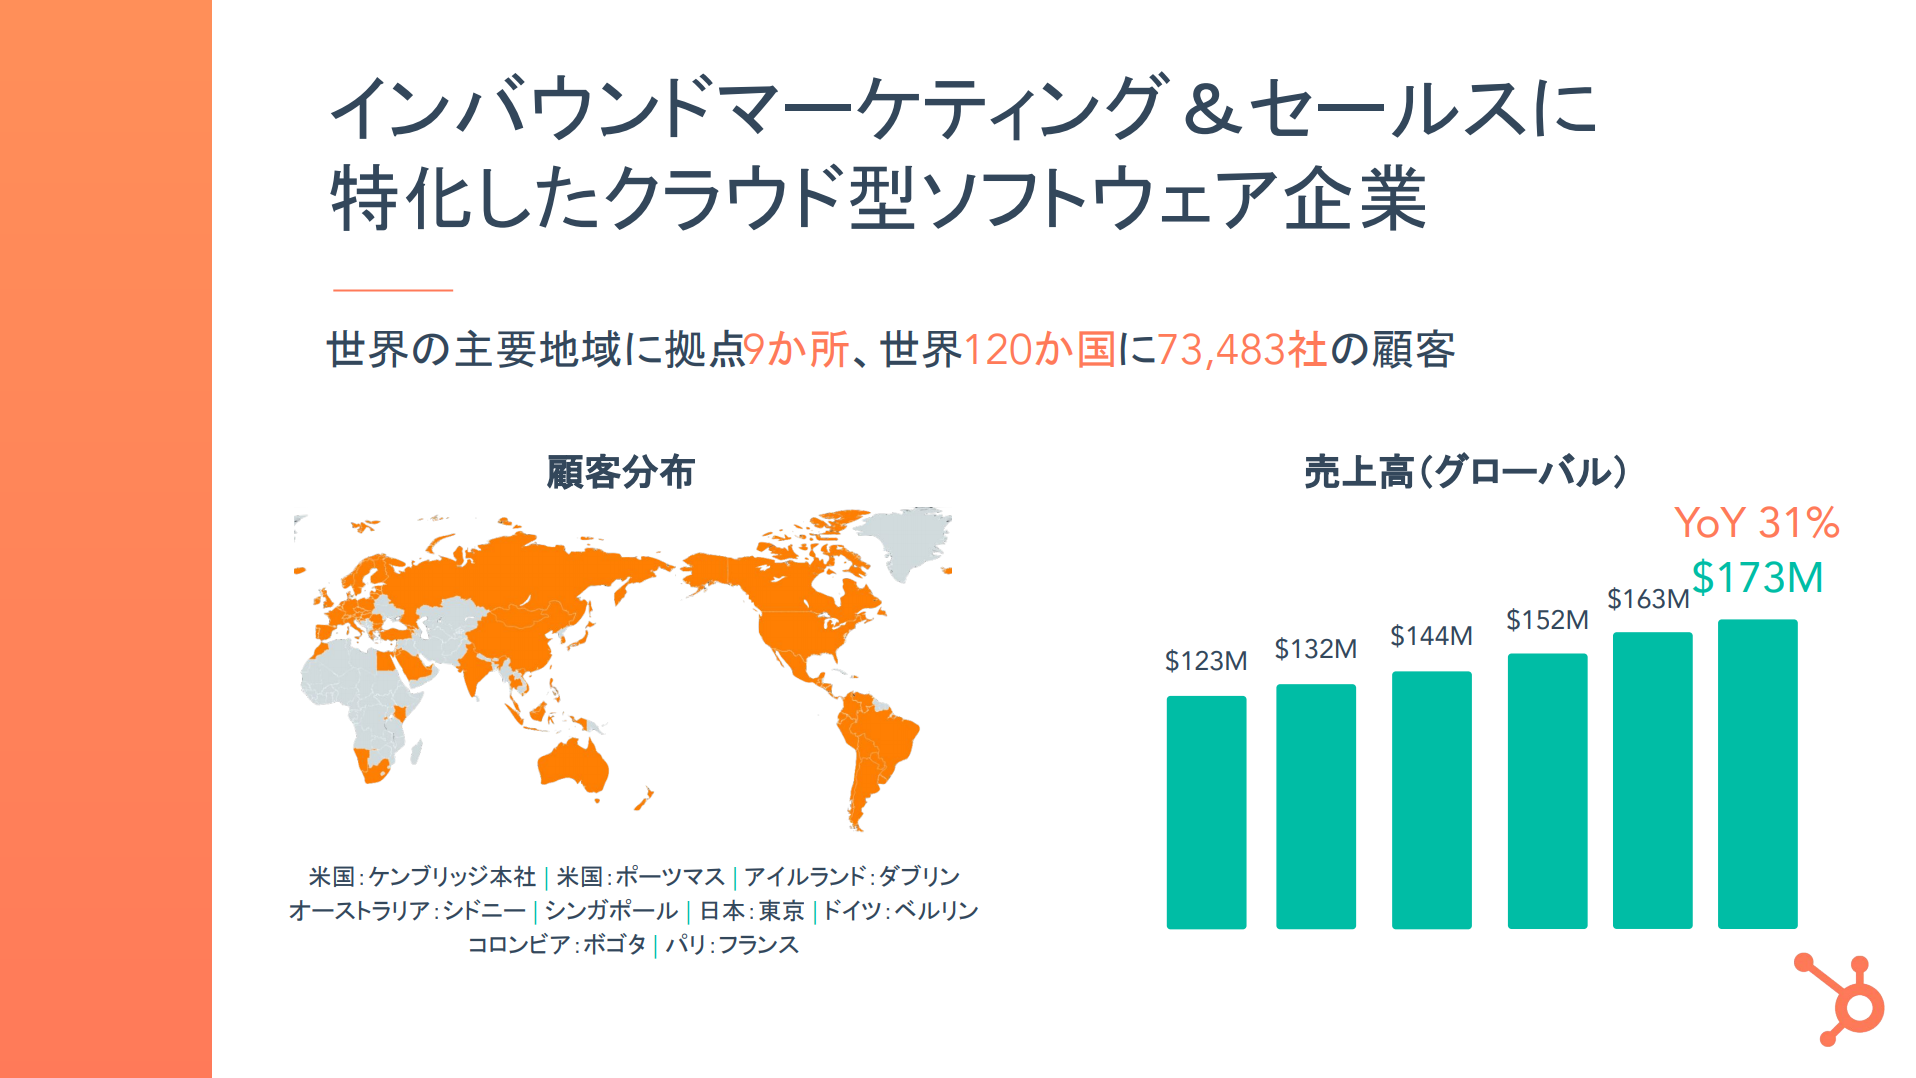 HubSpot Japan_overview_2020  last update_ 20200312  pdf